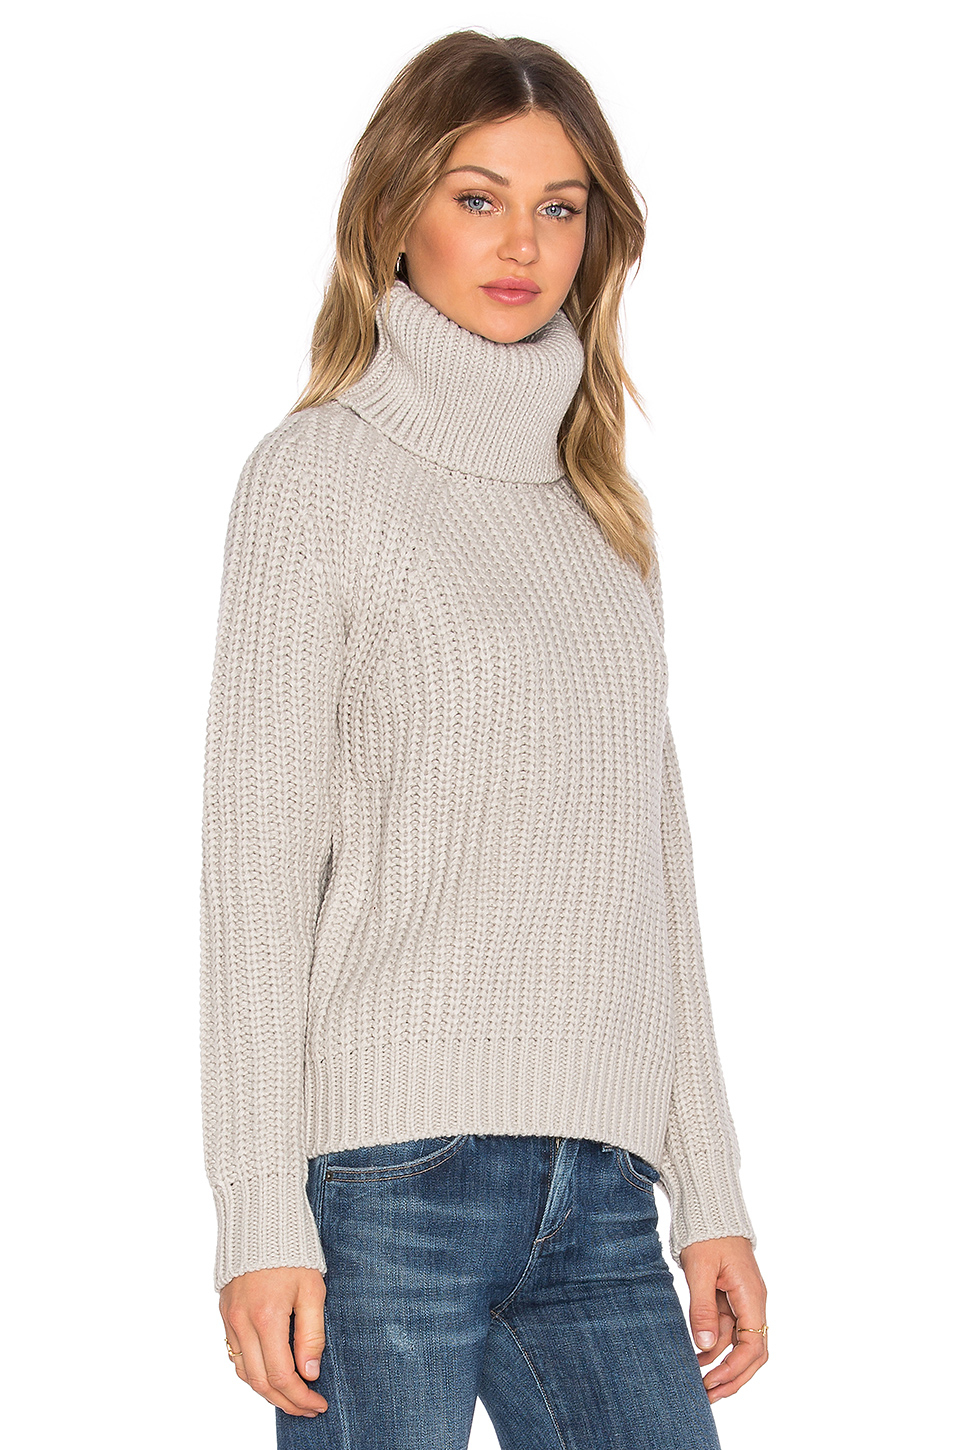 g star raw ave turtleneck sweater in natural lyst. Black Bedroom Furniture Sets. Home Design Ideas